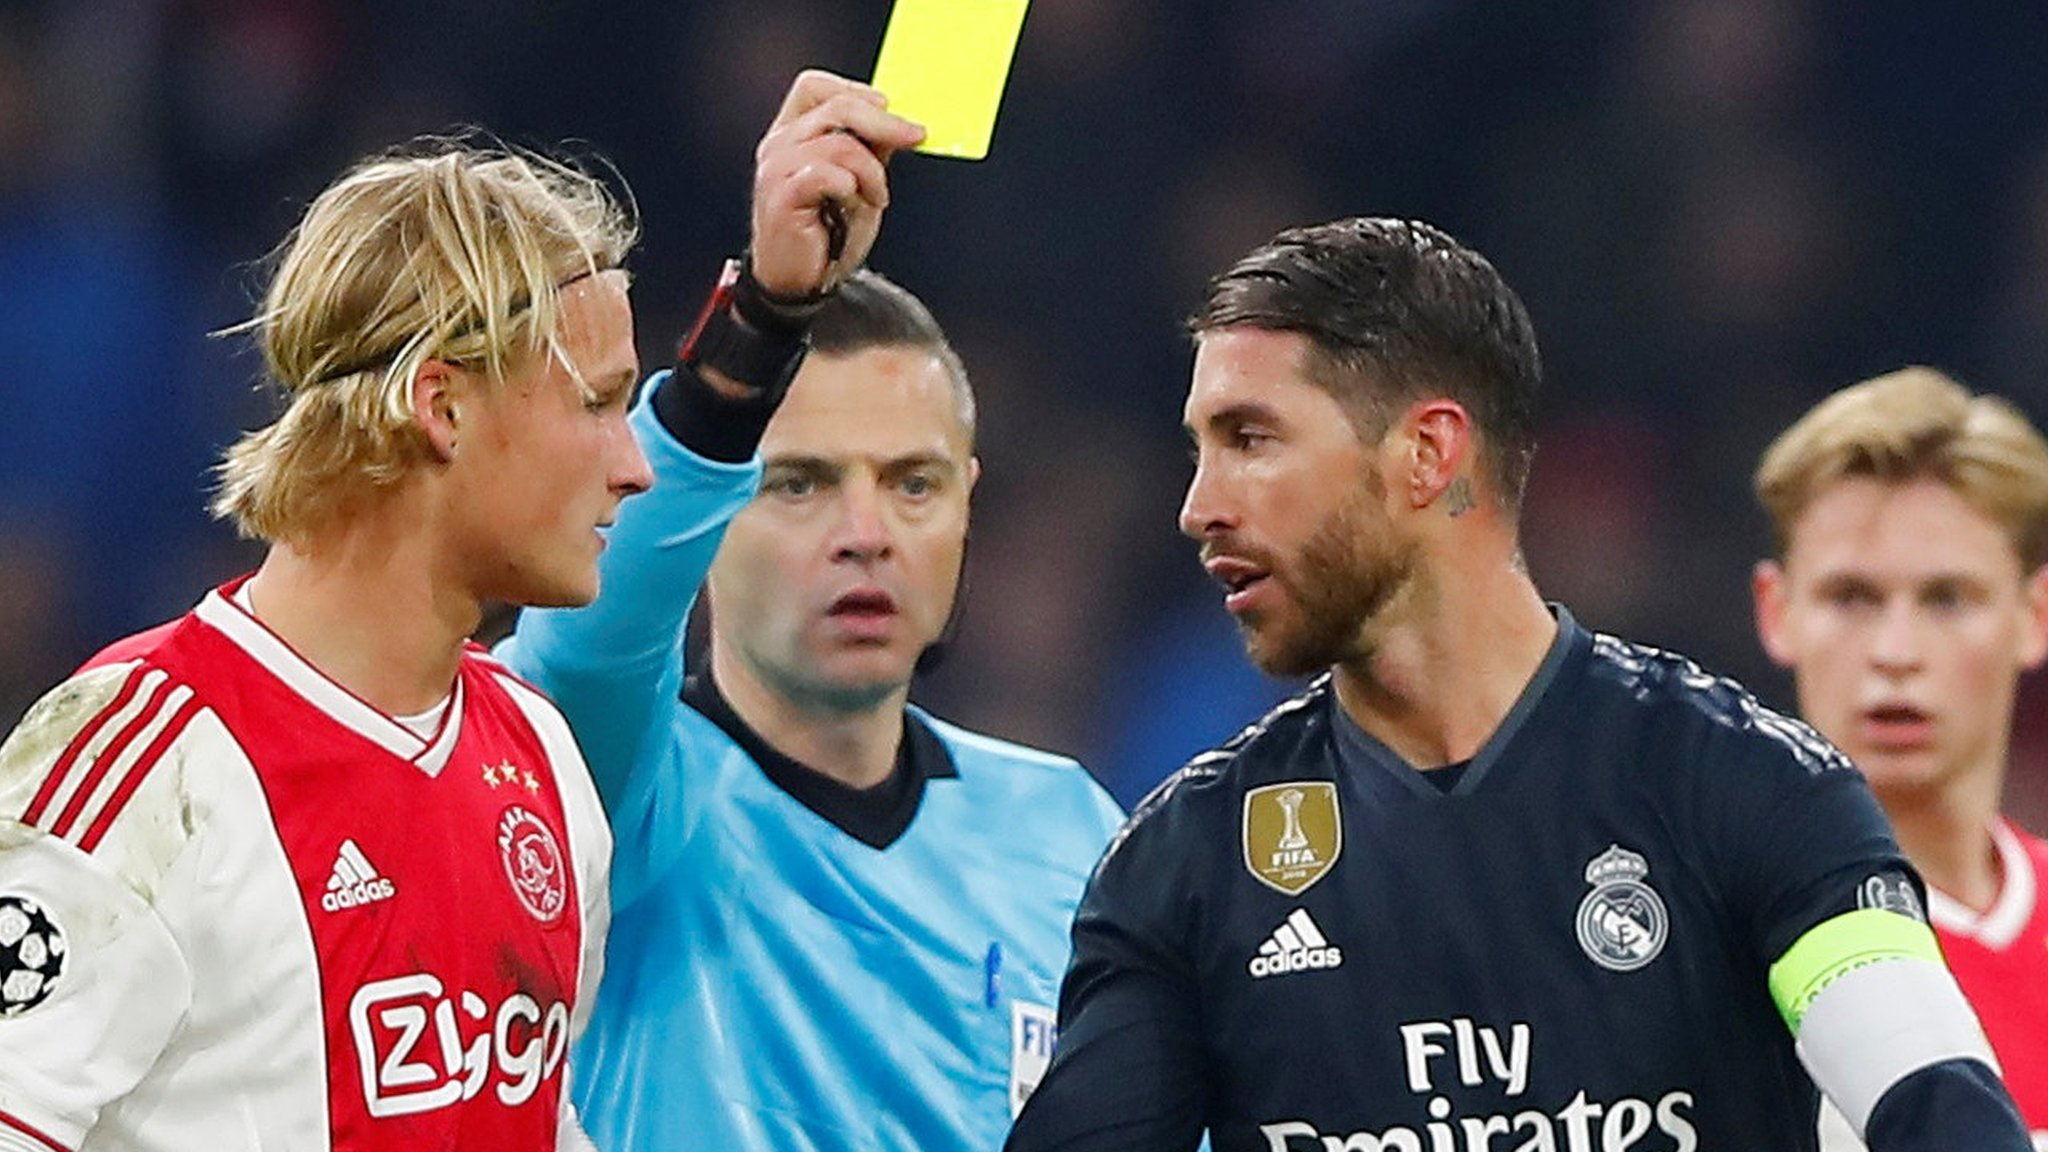 Sergio Ramos: Real Madrid defender 'had no choice' over controversial yellow card